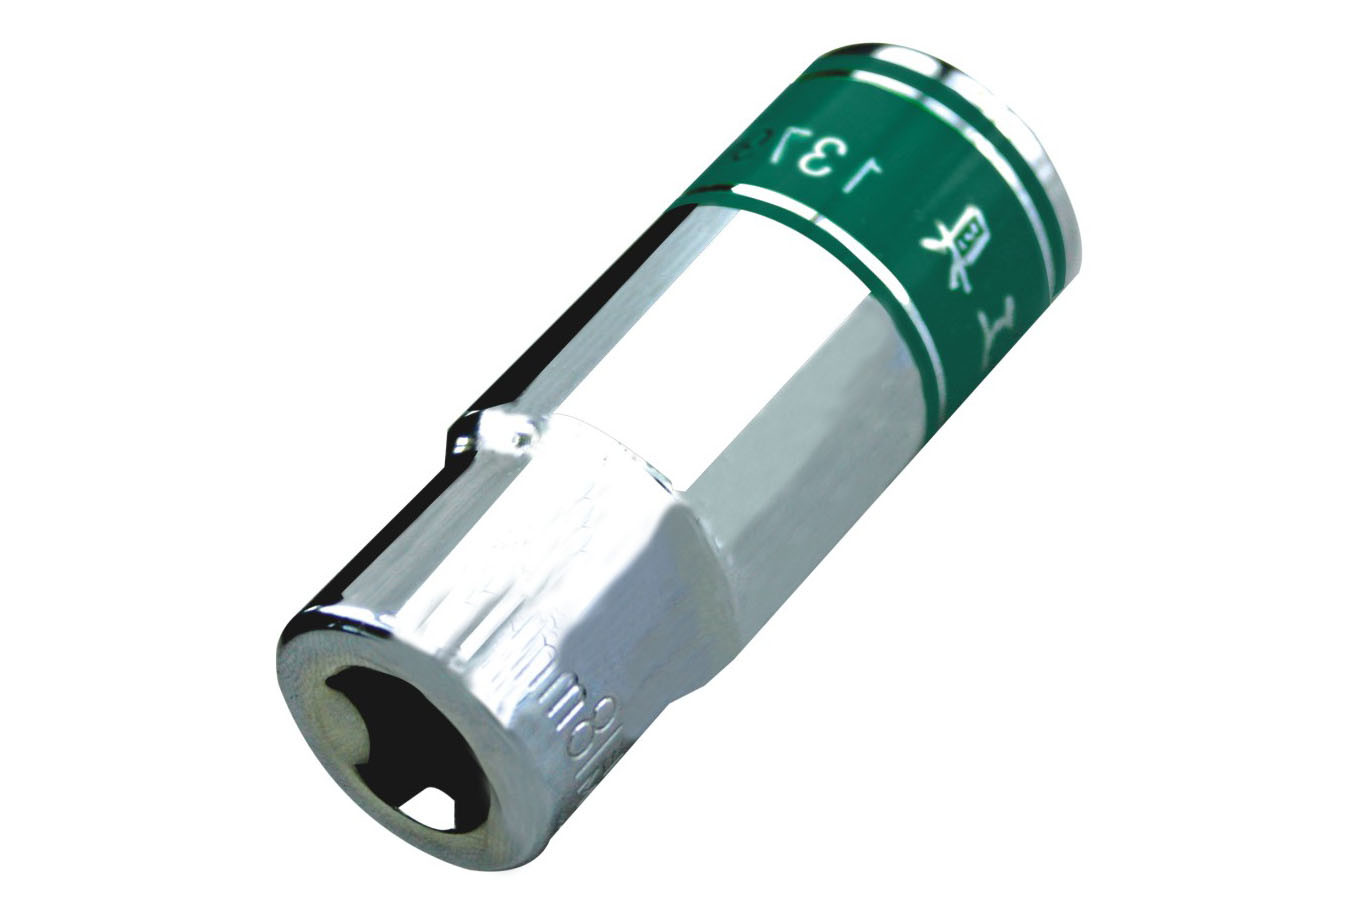 12.5mm Drive Shallow Socket (12 Point, 8-32mm)